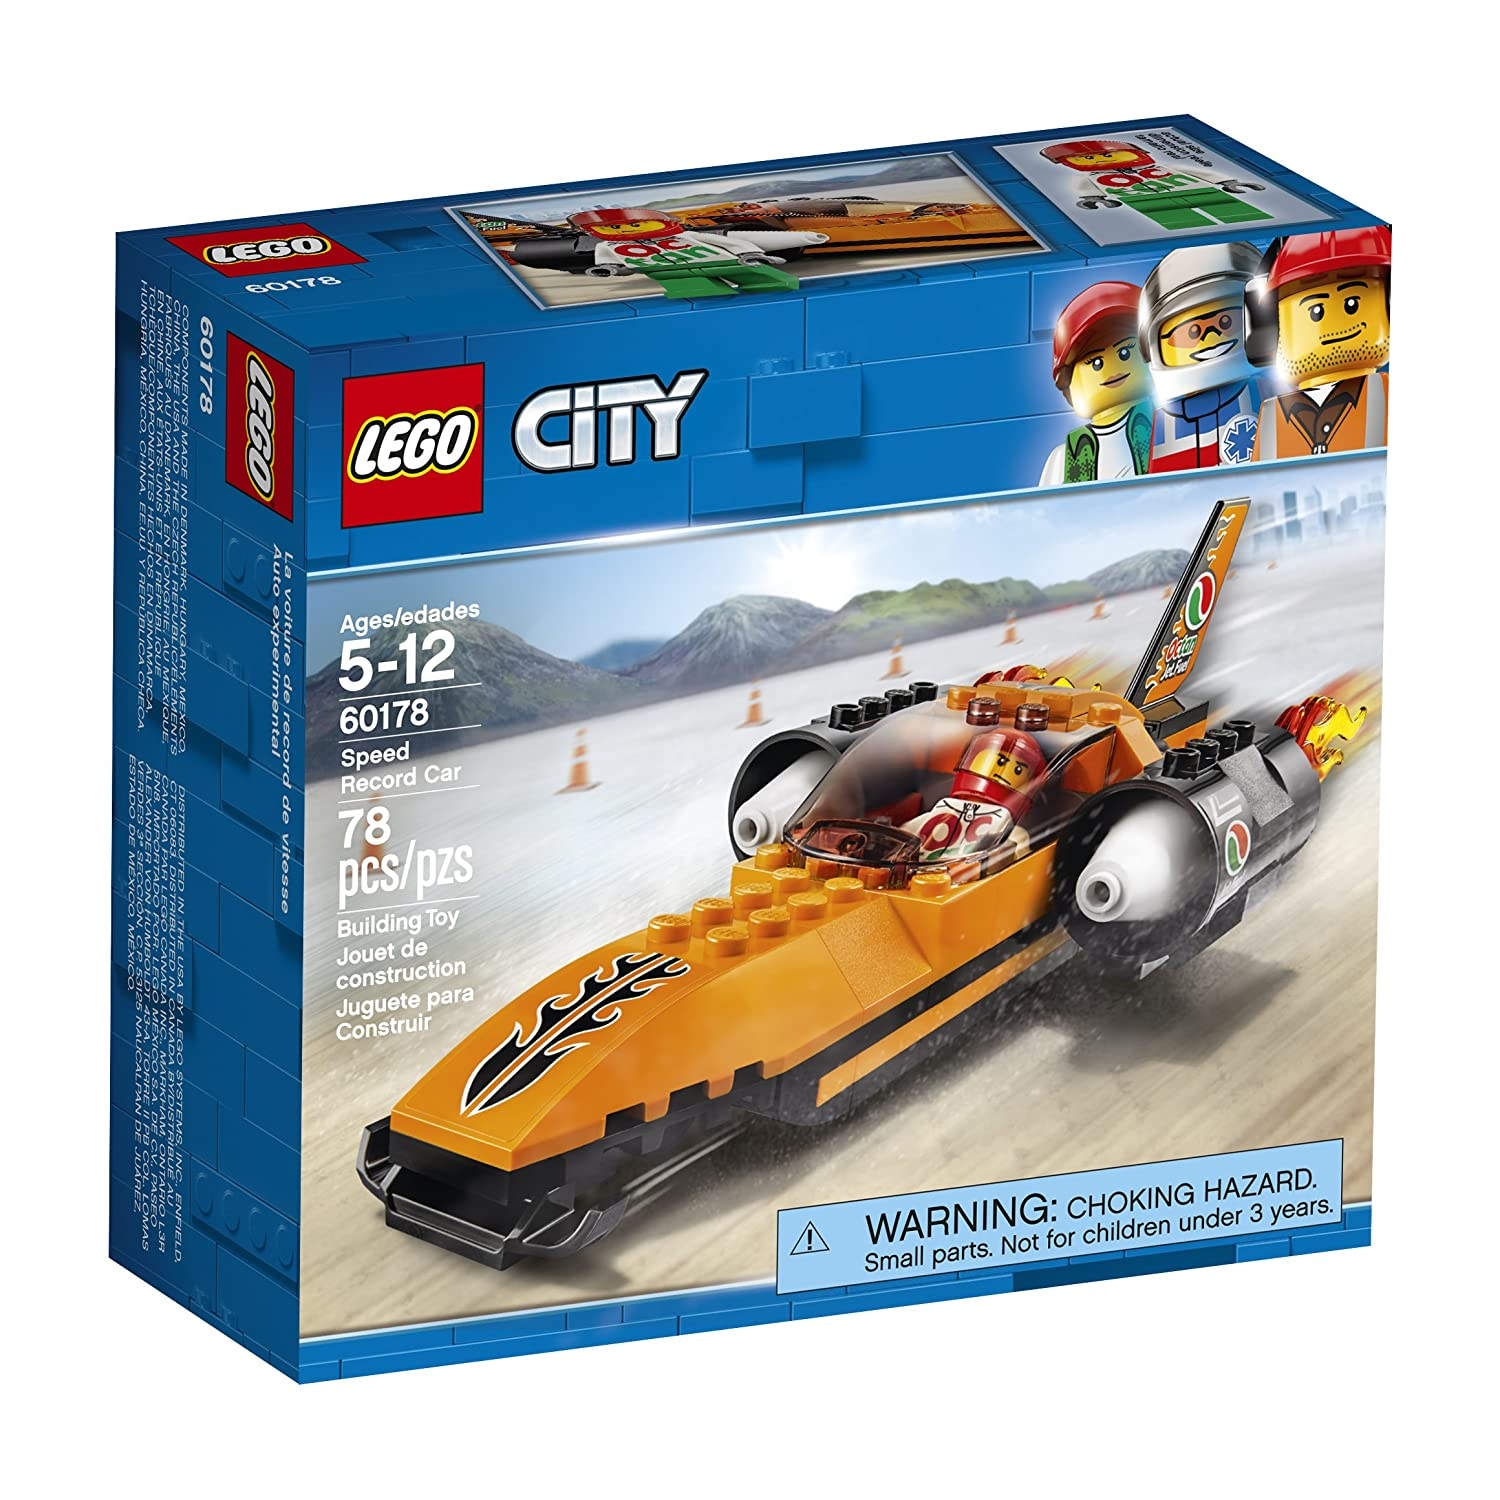 LEGO City Speed Record Car 60178 Building Kit (78 Piece) 6209741